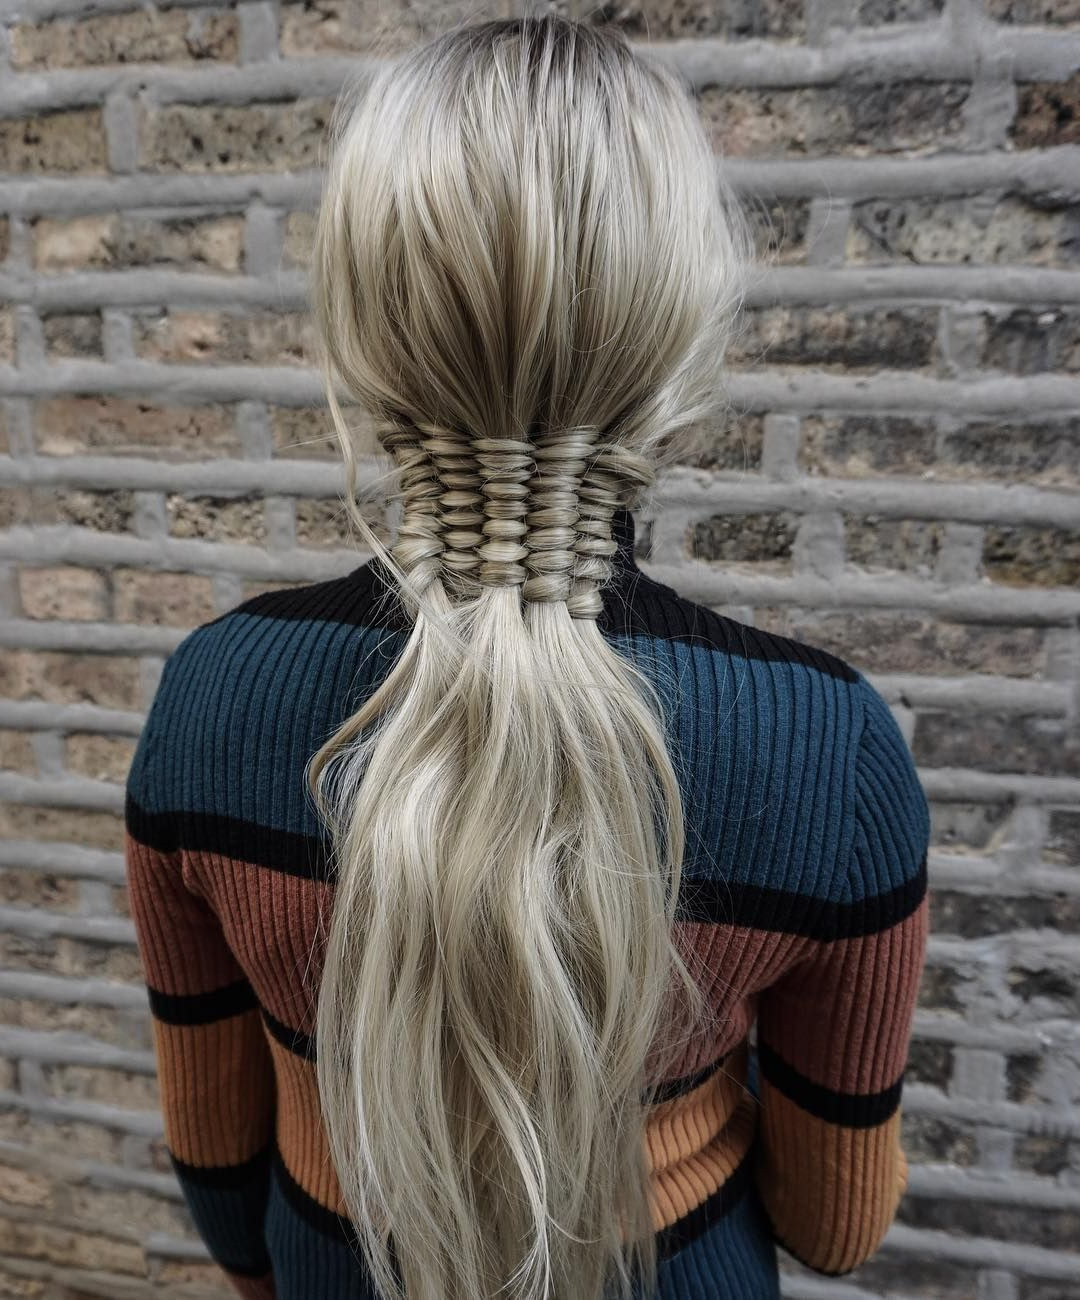 2020 Blonde Accent Braid Hairstyles With Regard To Pretty Up Your Ponytail With This Epic Braided Accent! (View 9 of 20)